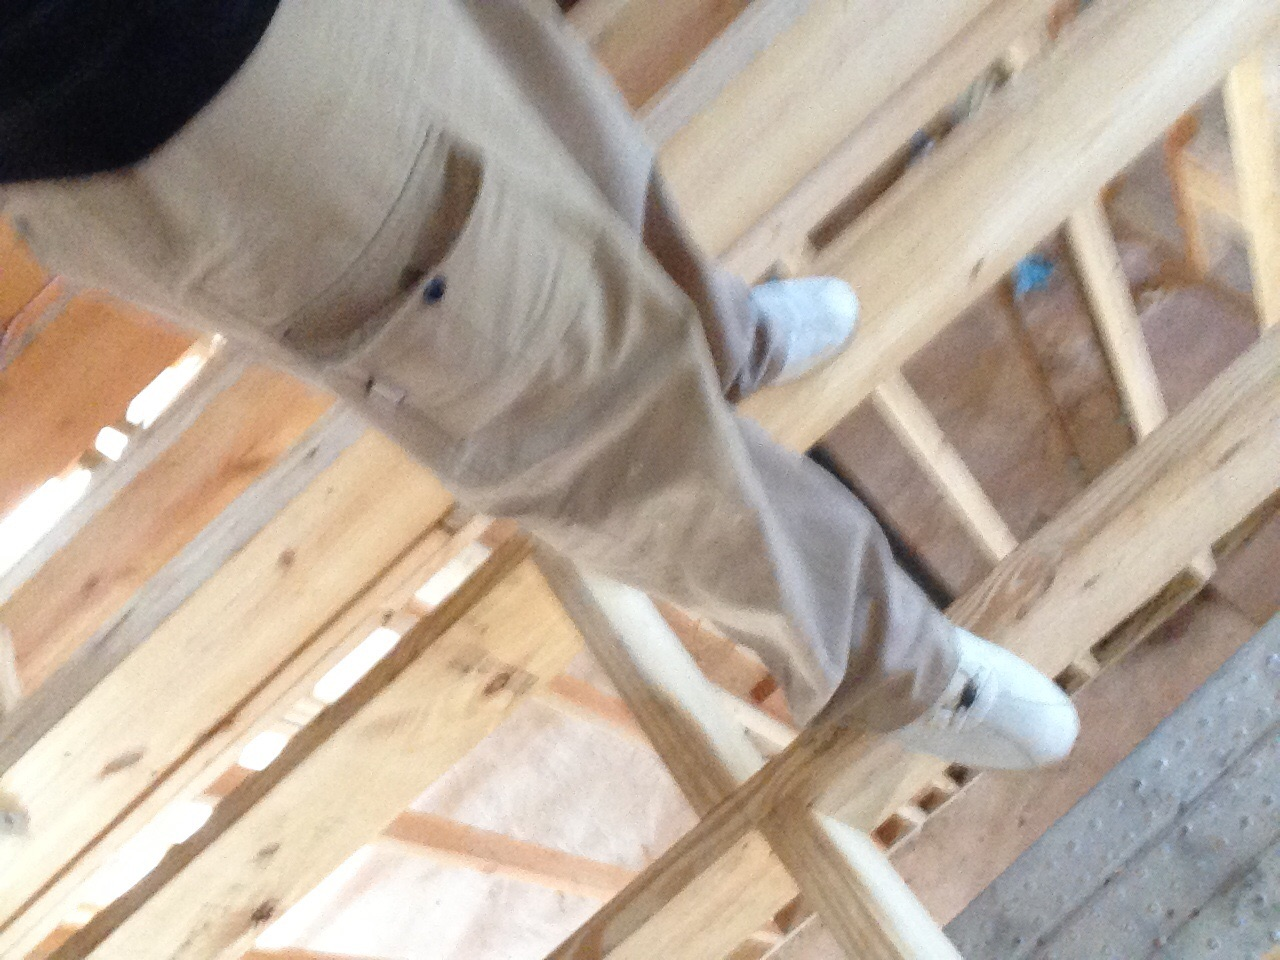 walking on beams and joist-image.jpg